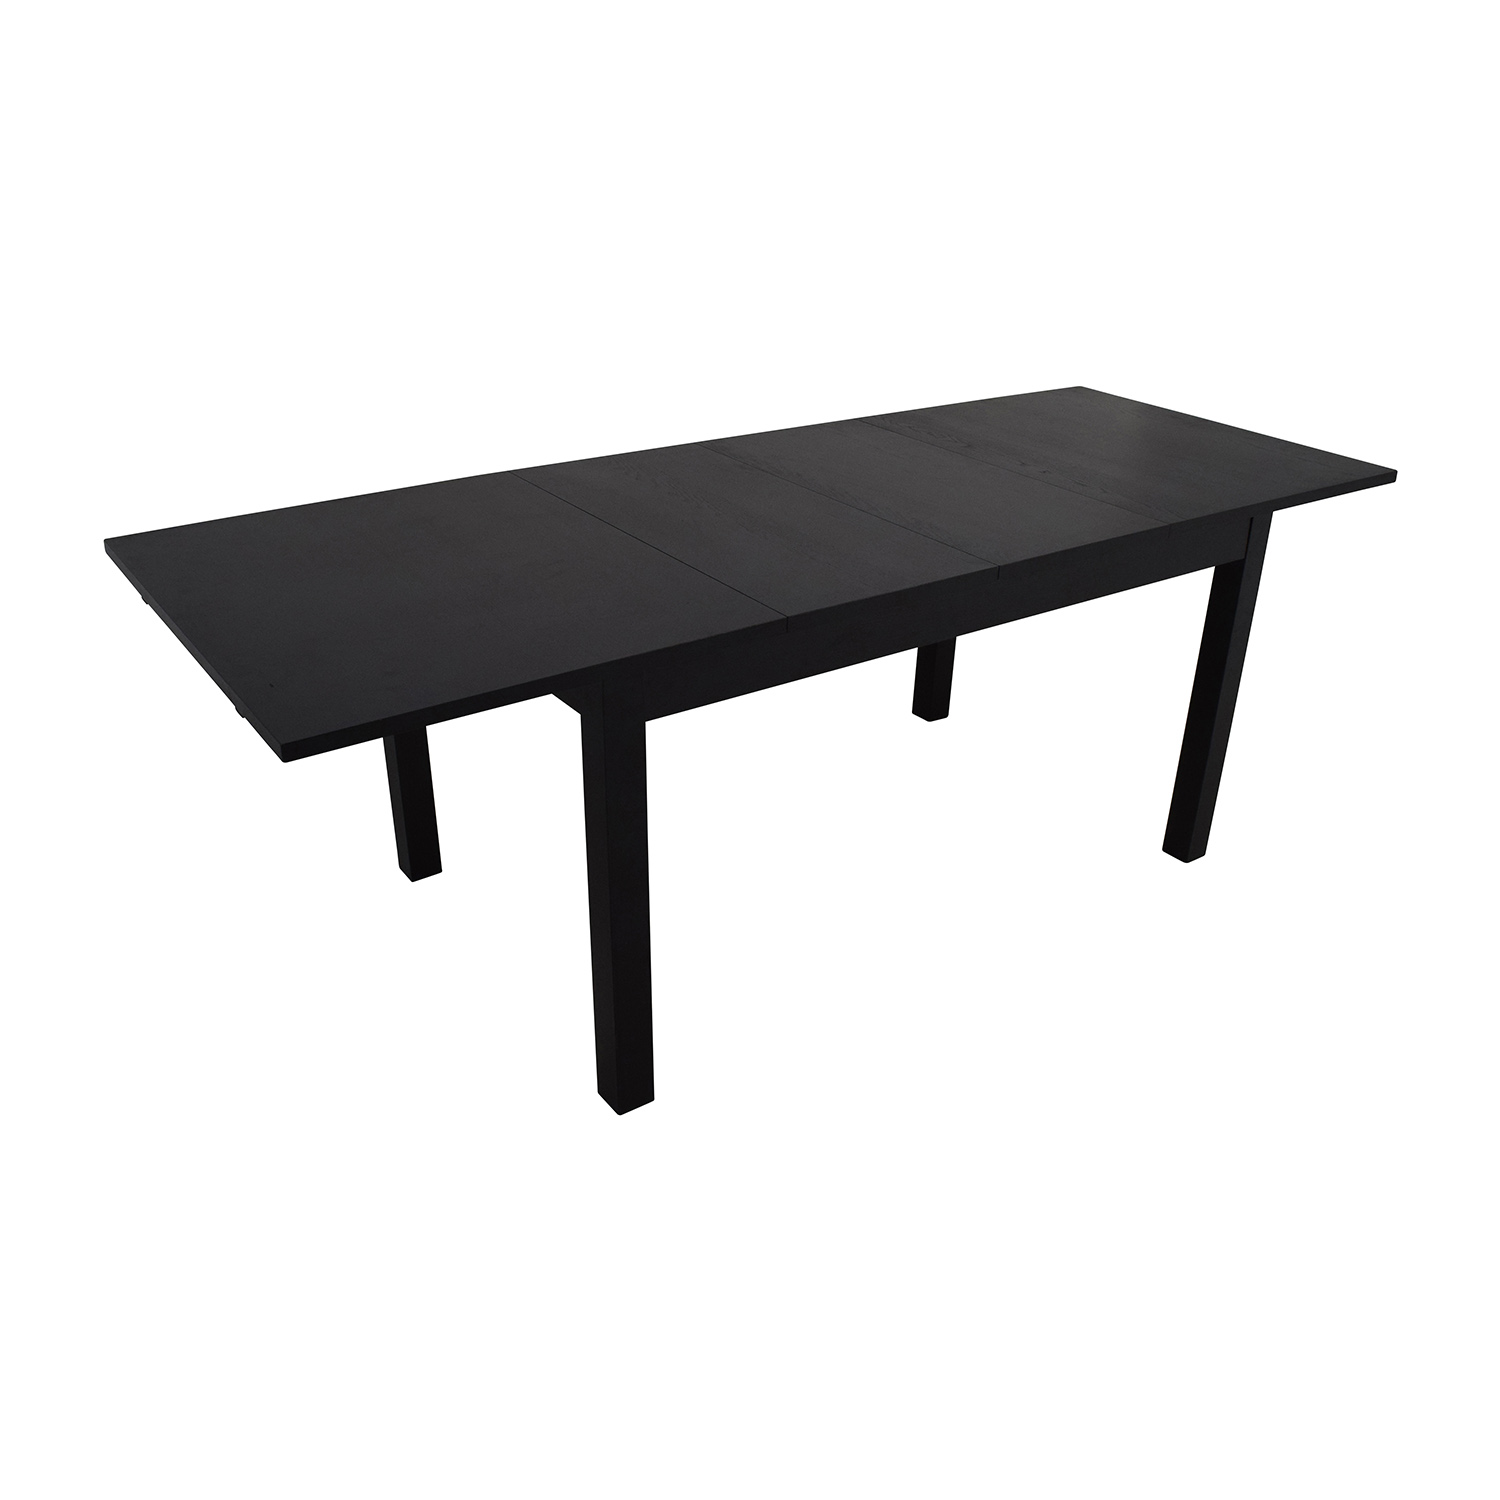 54% OFF IKEA IKEA Bjursta Extendable Table Tables